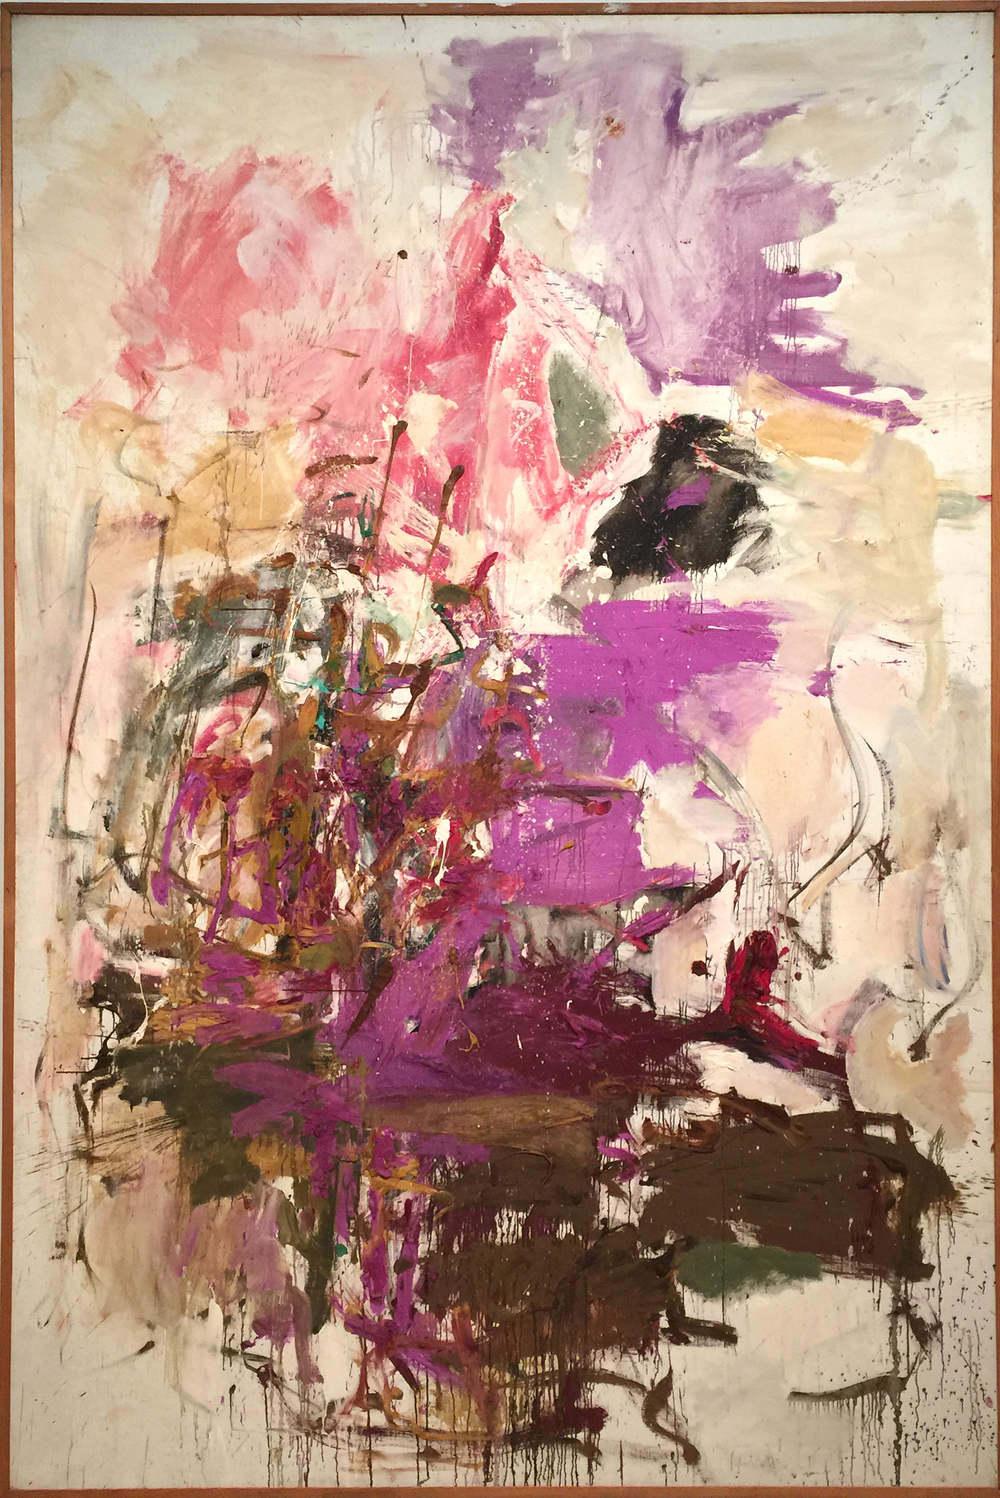 Joan Mitchell,  Untitled,  1961.  A really wonderful Mitchell with a great palette of purples and earthy golds.